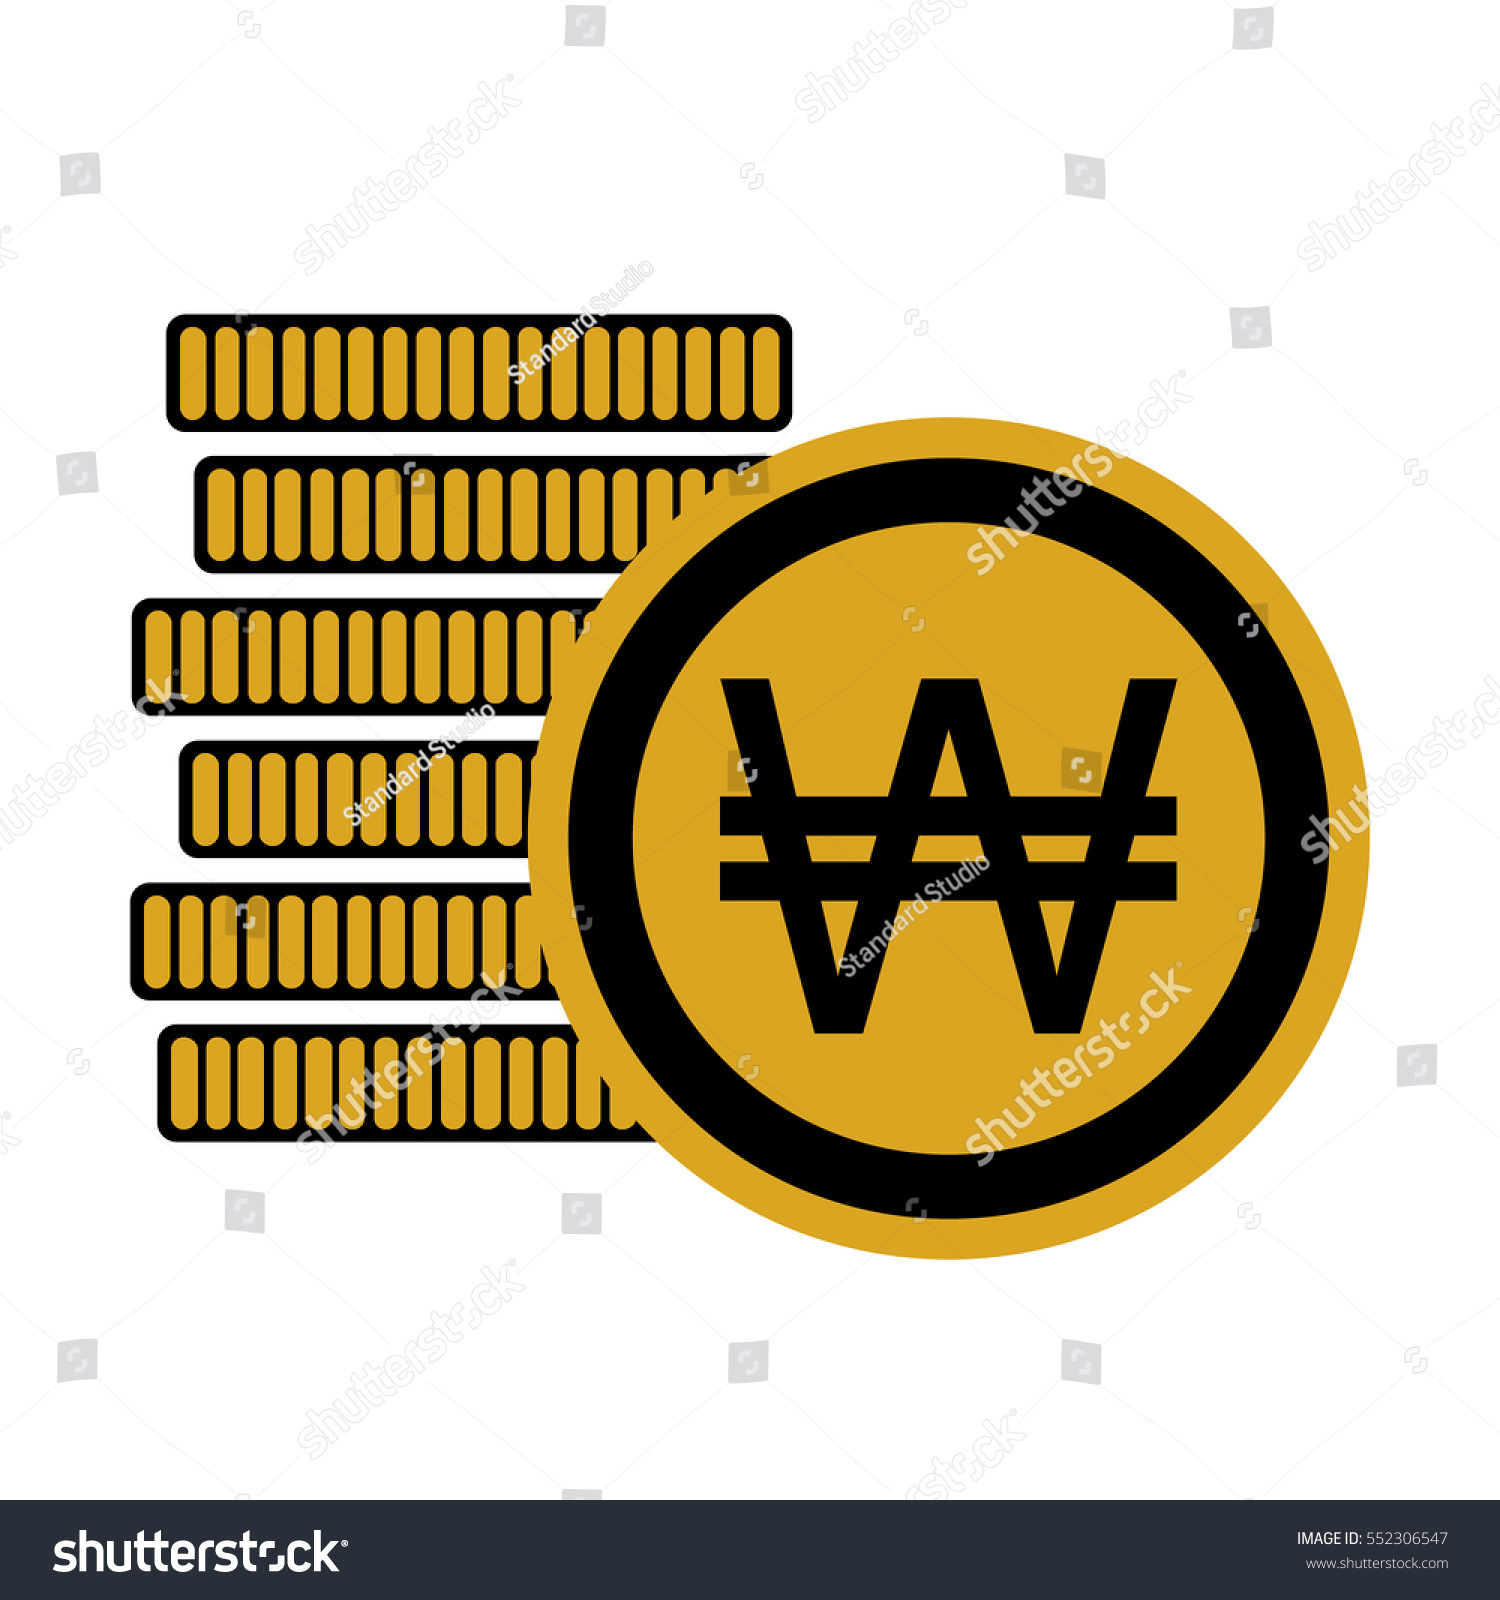 Money six coins south korean won stock vector 552306547 shutterstock money six coins south korean won icon krw currency symbol vector illustration buycottarizona